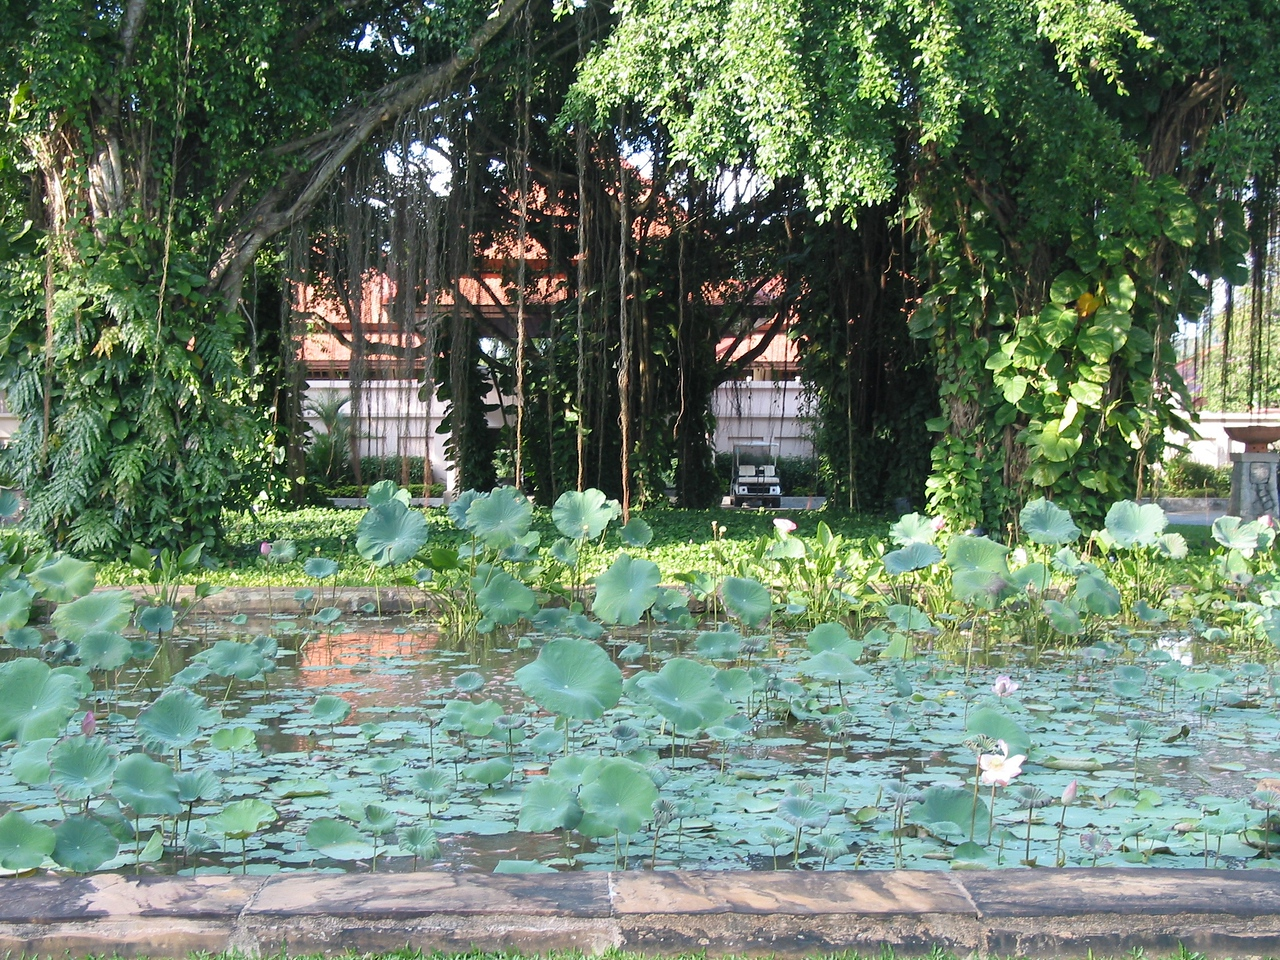 … a large lilly and lotus pond in front of the hotel.